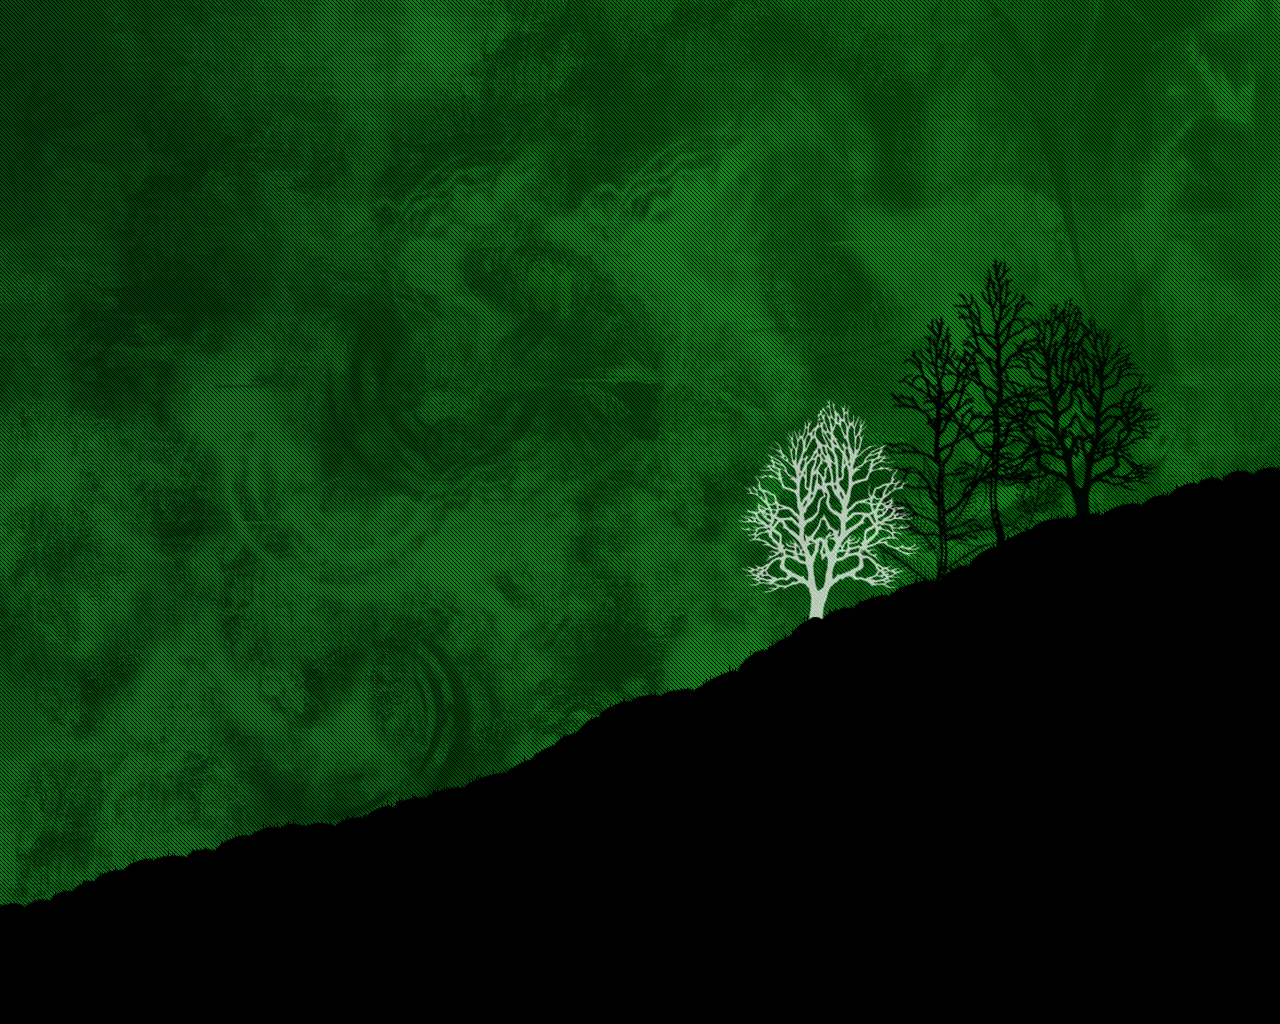 green and black wallpaper | cool wallpaper